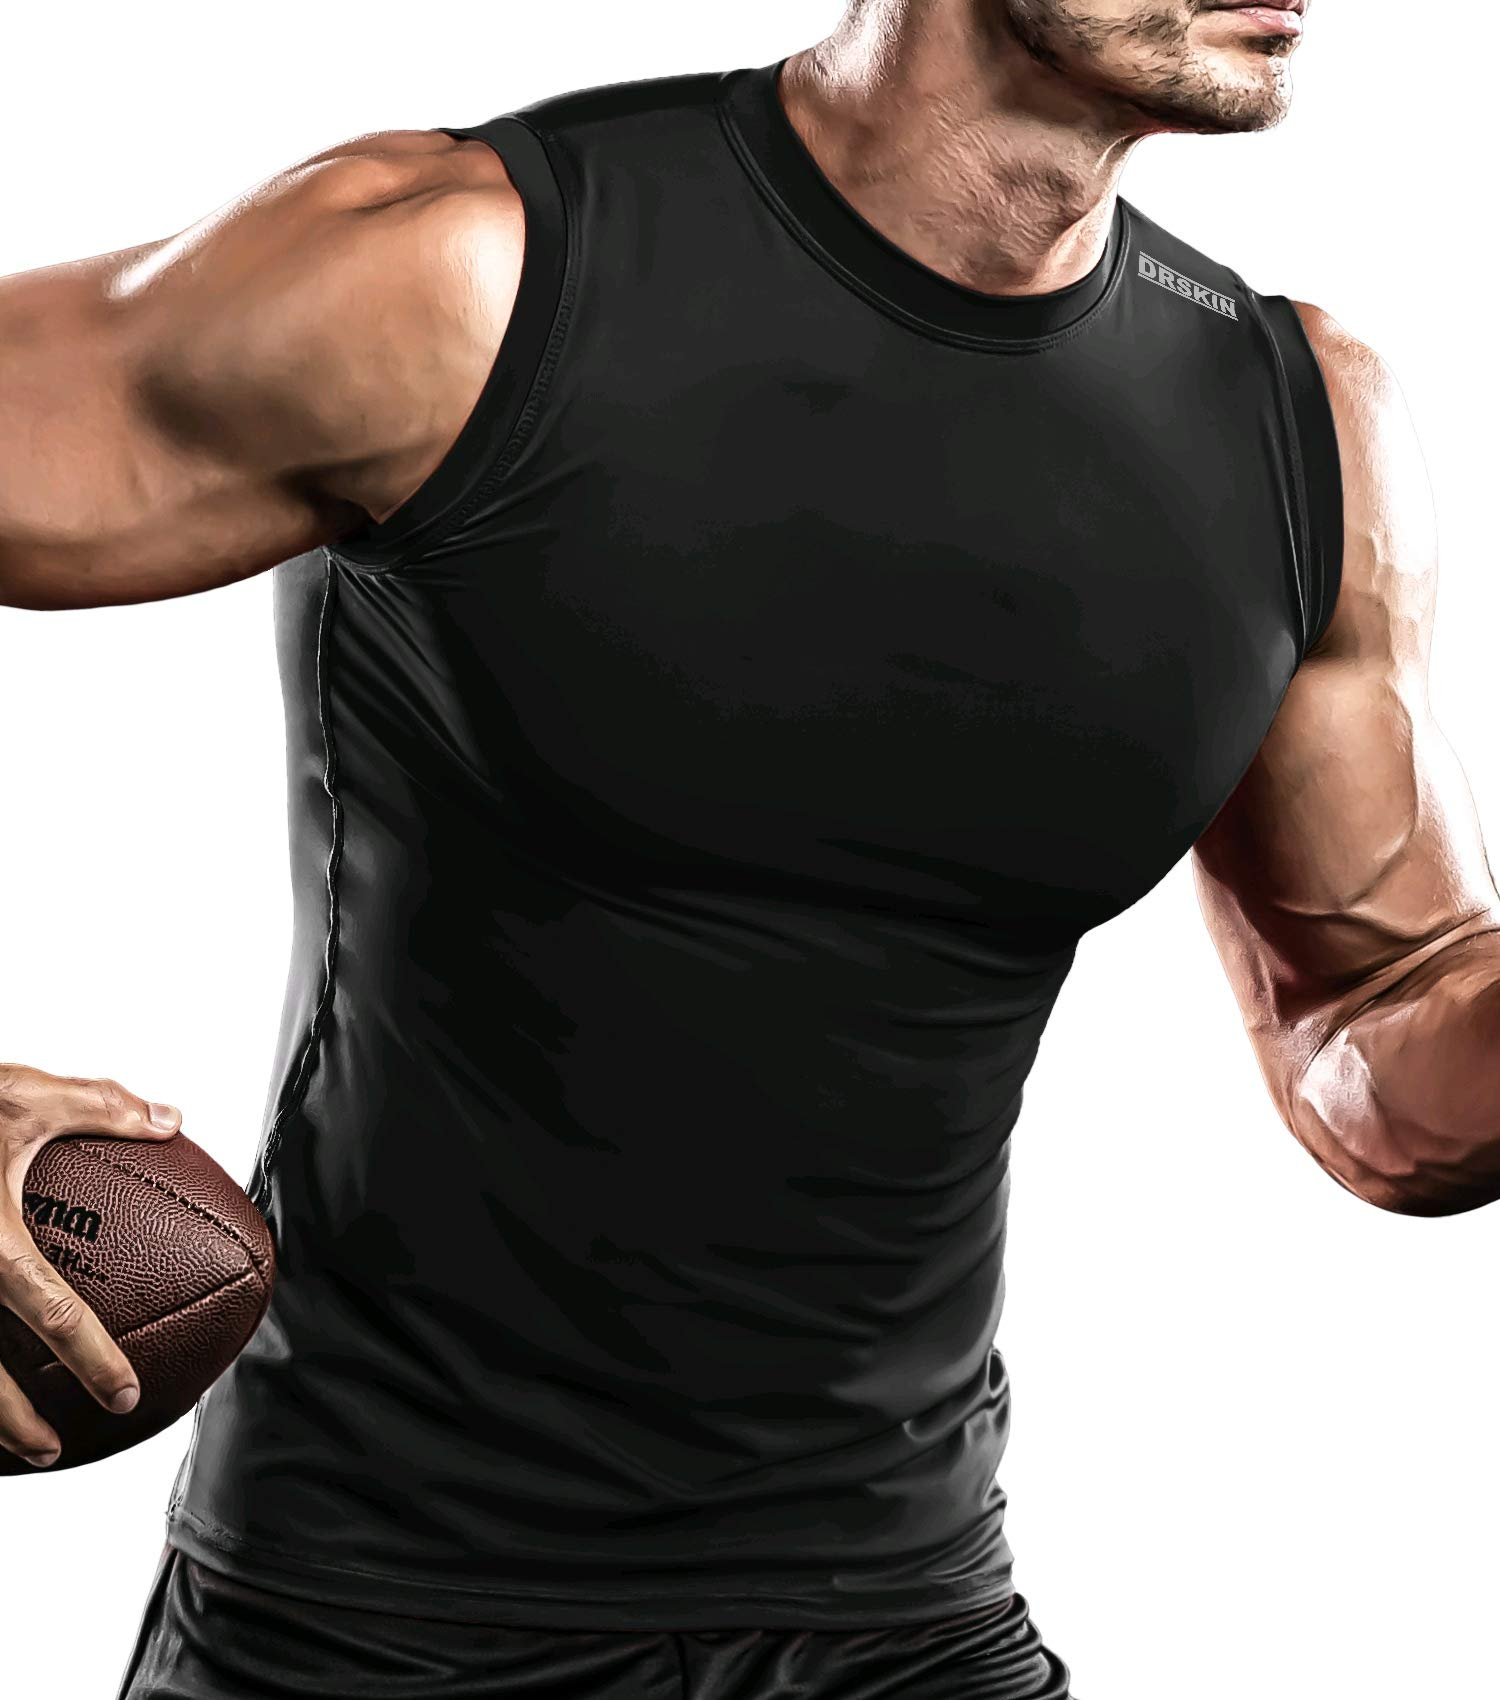 Boys Compression Tank Top Football Base Layer Moisture Wicking Athletic Sleeveless T-Shirt Vest 2 Pack